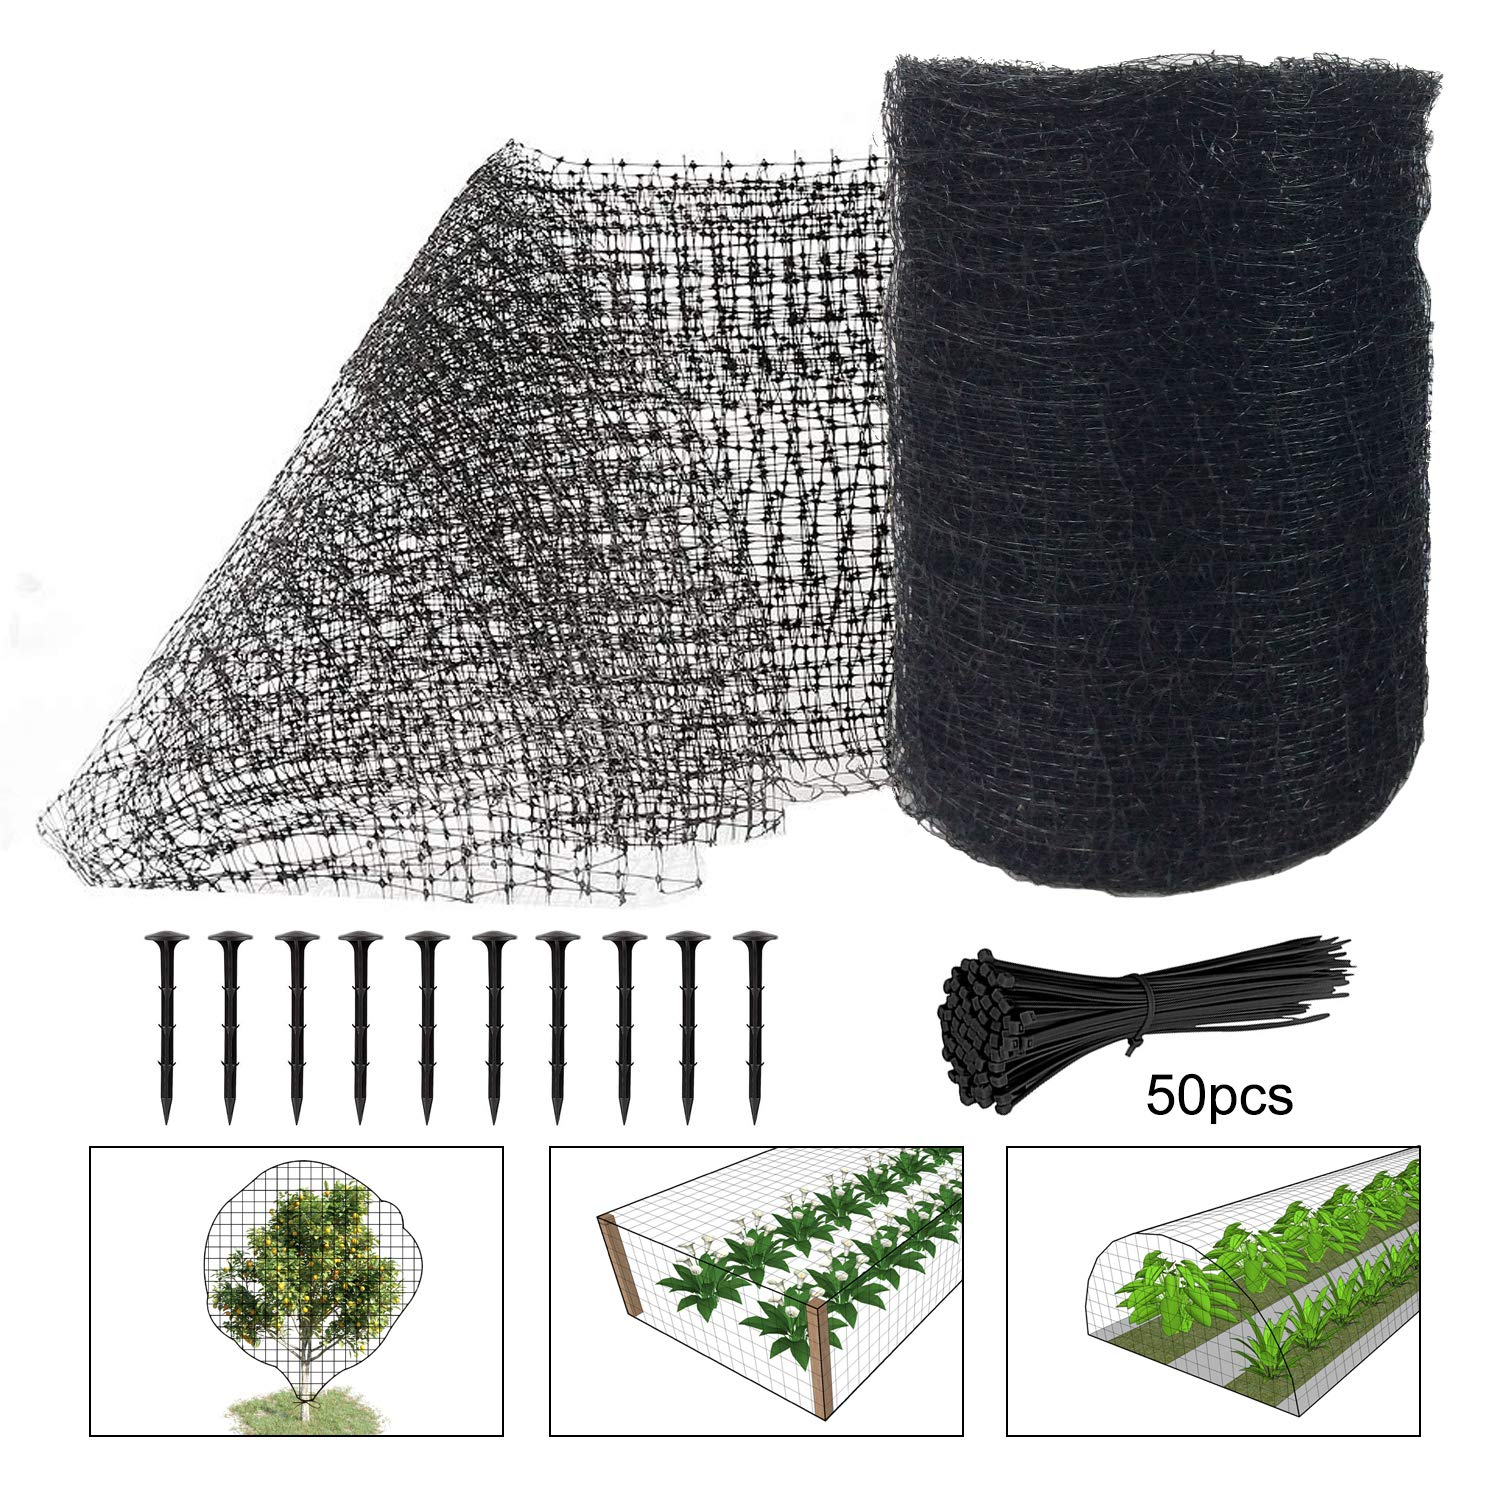 Deer Fence Netting, 7 x 100 Feet Bird Netting Heavy Duty Anti Bird Deer Protection Net Reusable Protective Netting for Garden Plants Fruit Trees Against Birds, Deer and Other Animals